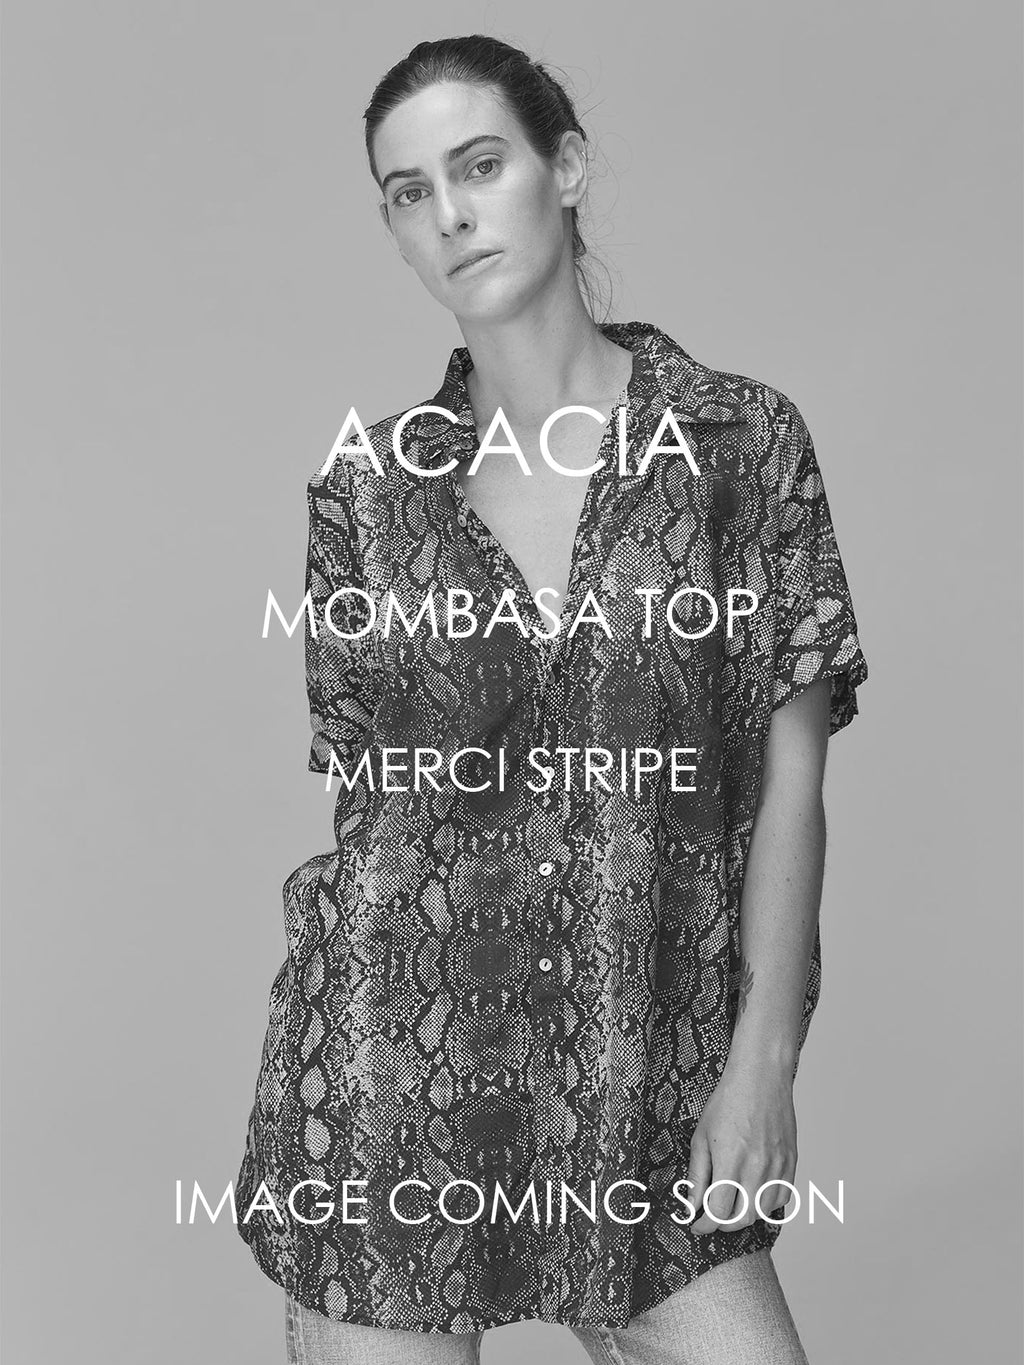 ACACIA Mombasa Top | Merci Stripe